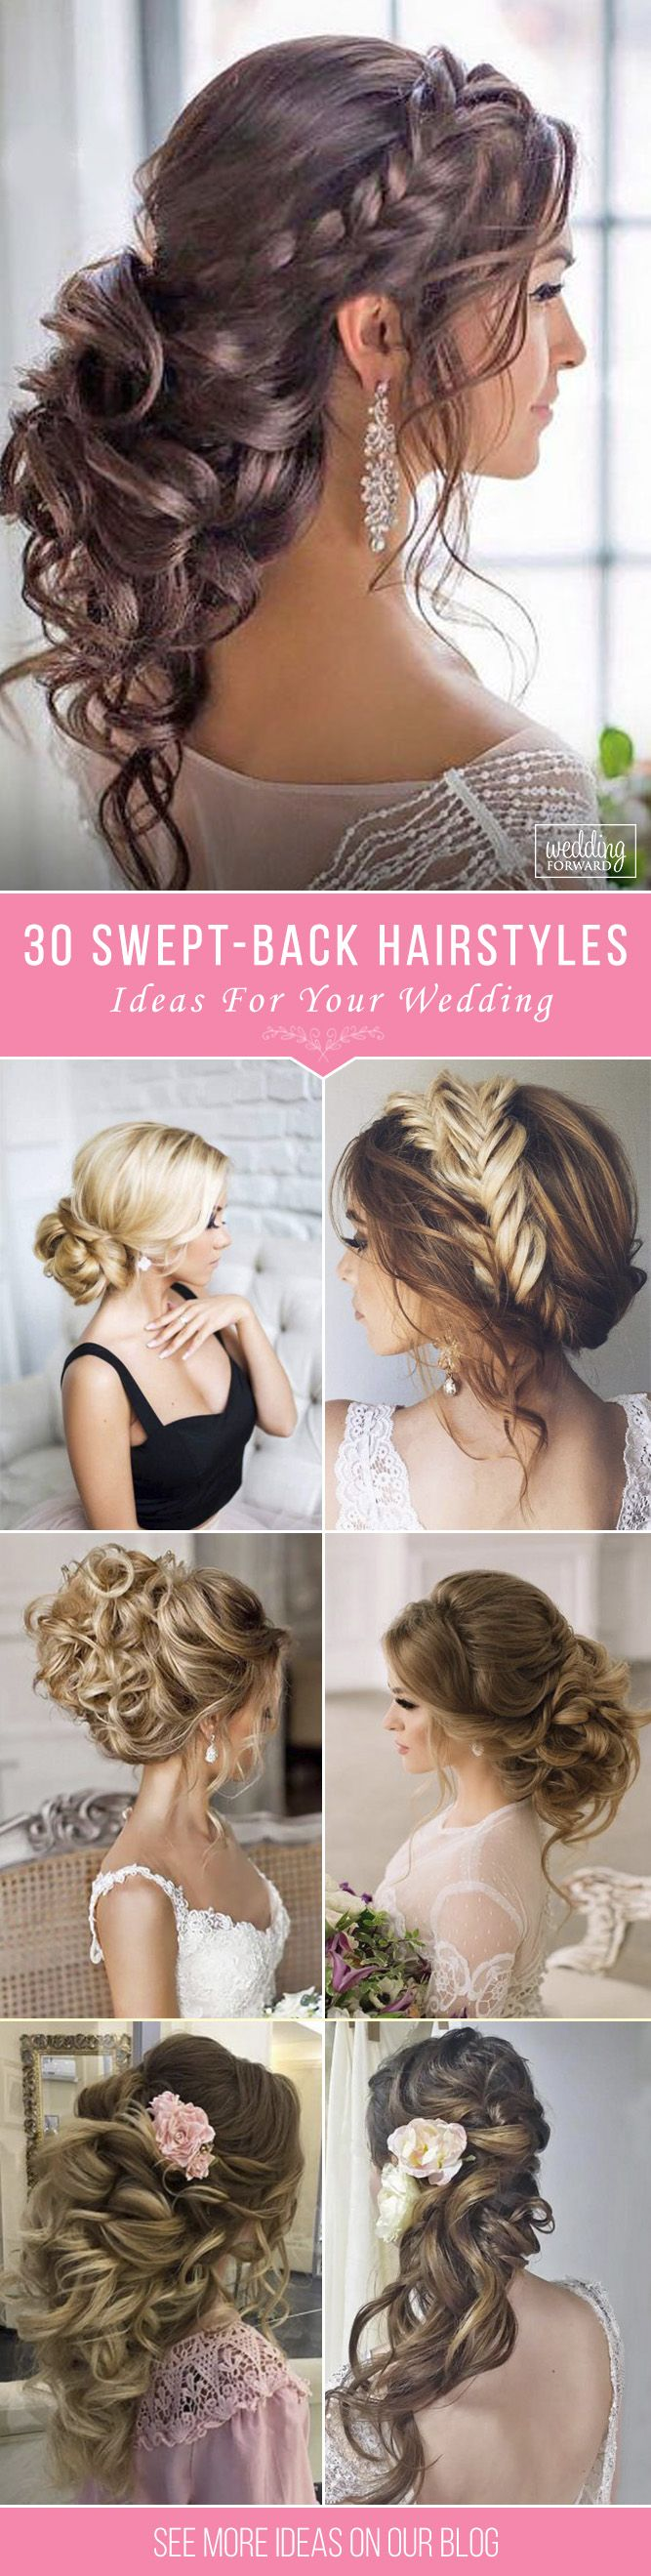 30 Trendy Swept-Back Wedding Hairstyles ❤ If you are not sure which hairstyle ...